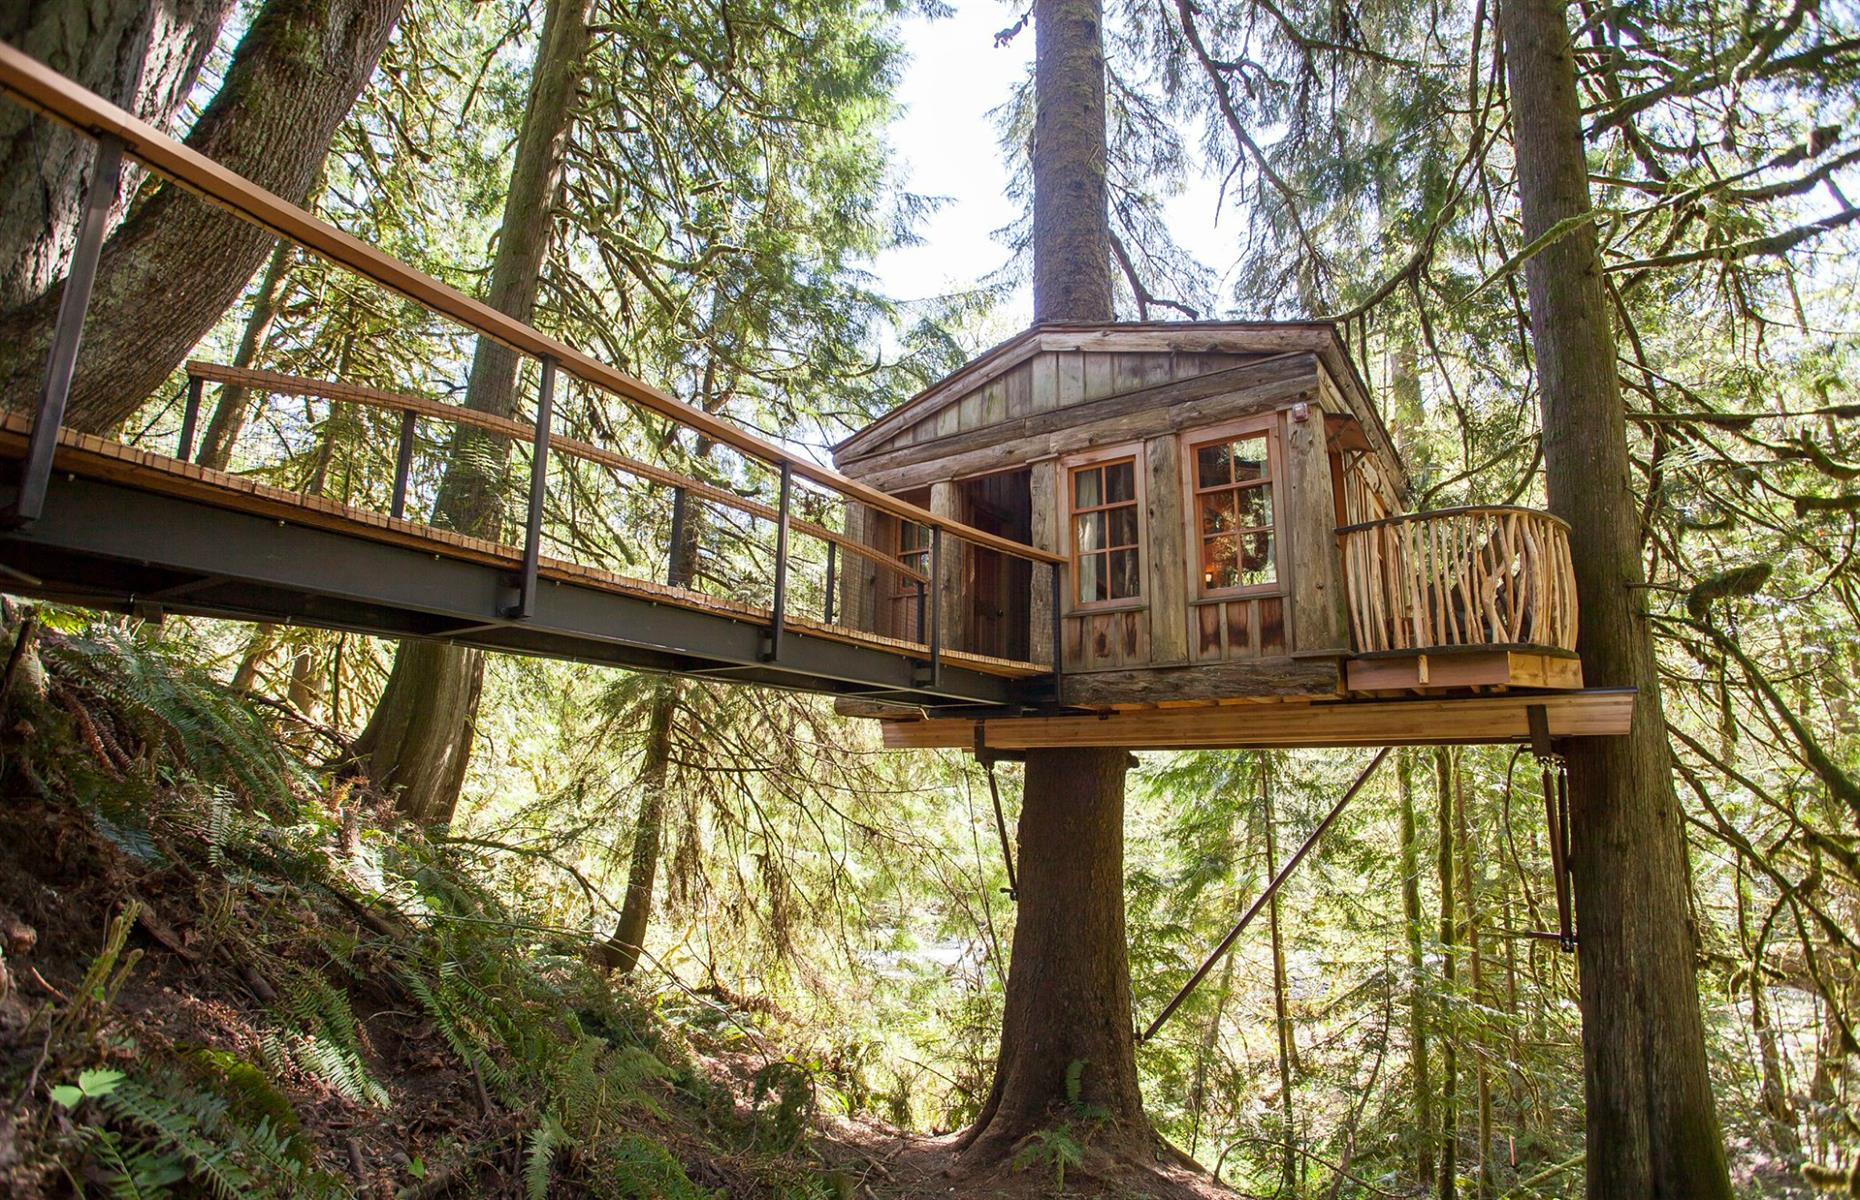 Slide 49 of 52: The six cozy treehouses at this serene retreat, just half an hour from Seattle, are tucked amid cedar and towering Douglas fir trees, with birdsong and the Raging River below providing a soothing soundtrack. Breakfast is provided and there are several restaurants within driving distance, though it's recommended that guests pick up some picnic provisions to make the most of their stay. Guests must wear masks in common areas and both stays and tours must be scheduled in advance.